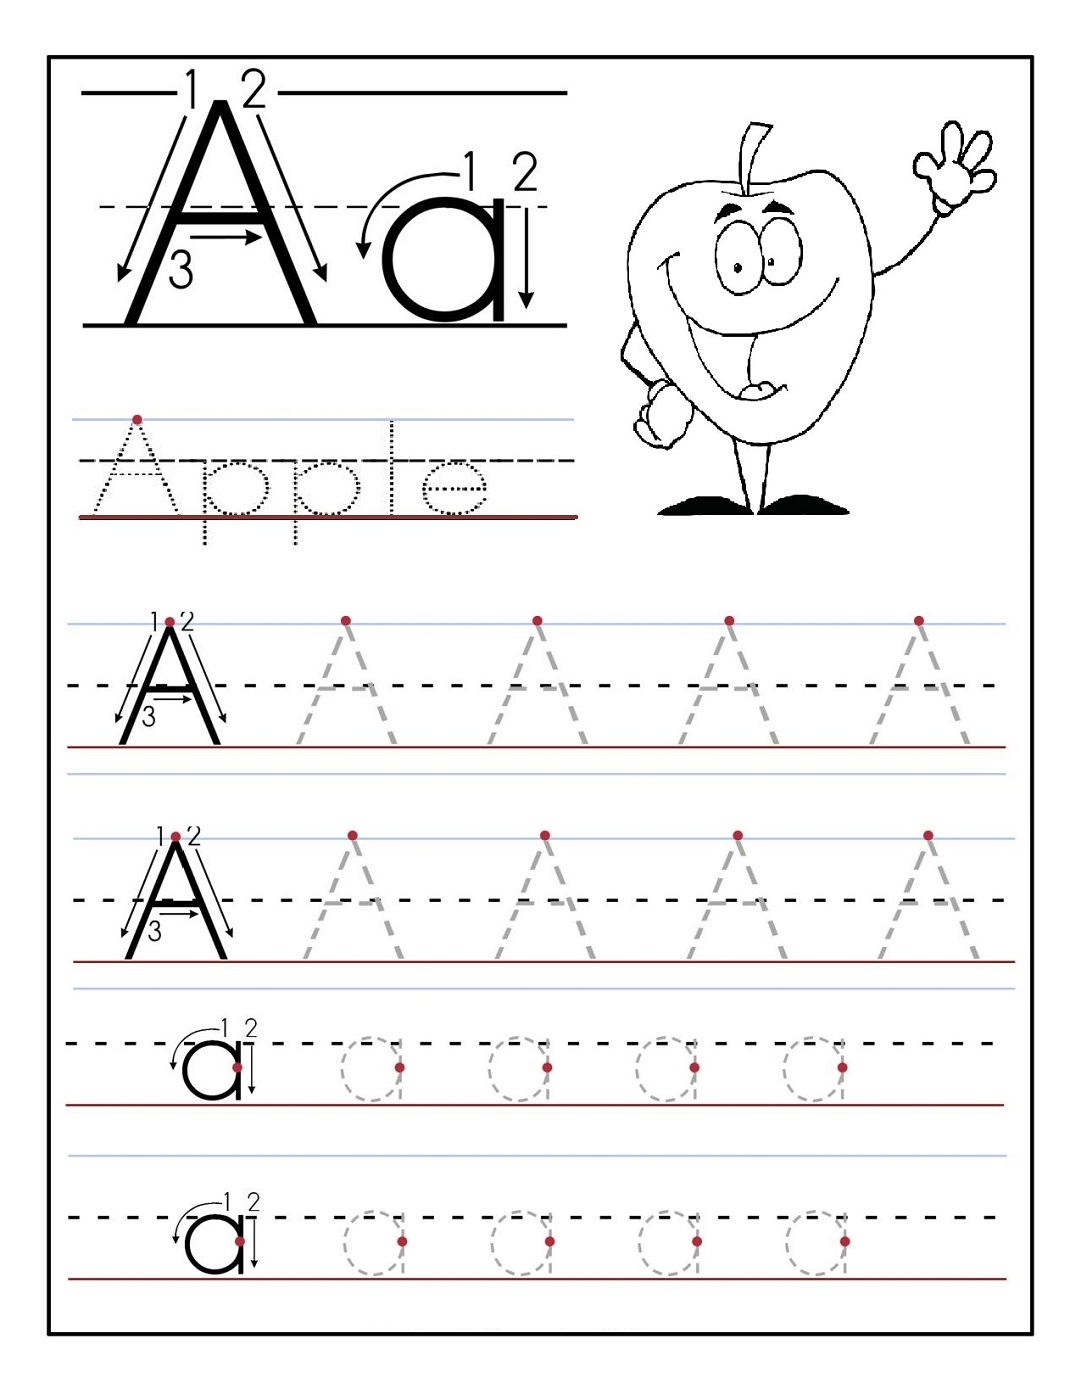 Agreeable Free Pre K Letter Tracing Worksheets For Tracing The